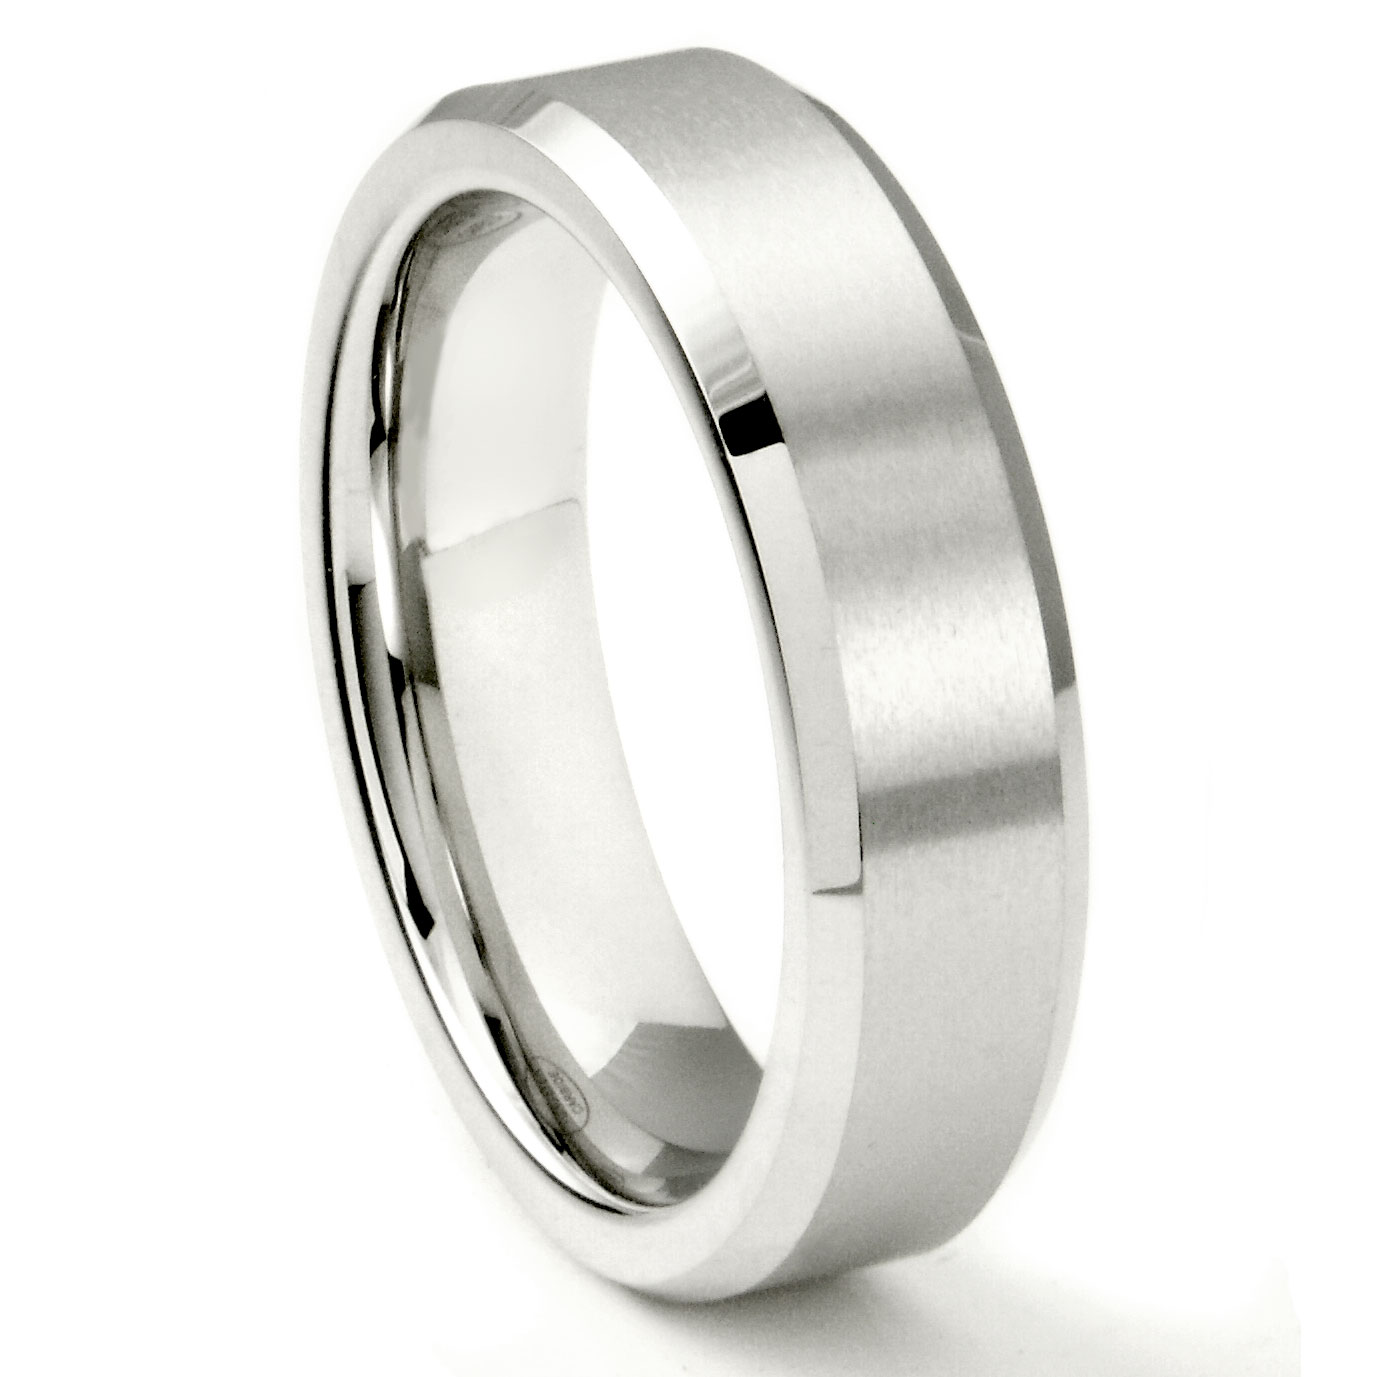 White Tungsten Carbide 6MM Beveled Wedding Band Ring P kay mens wedding bands Loading zoom